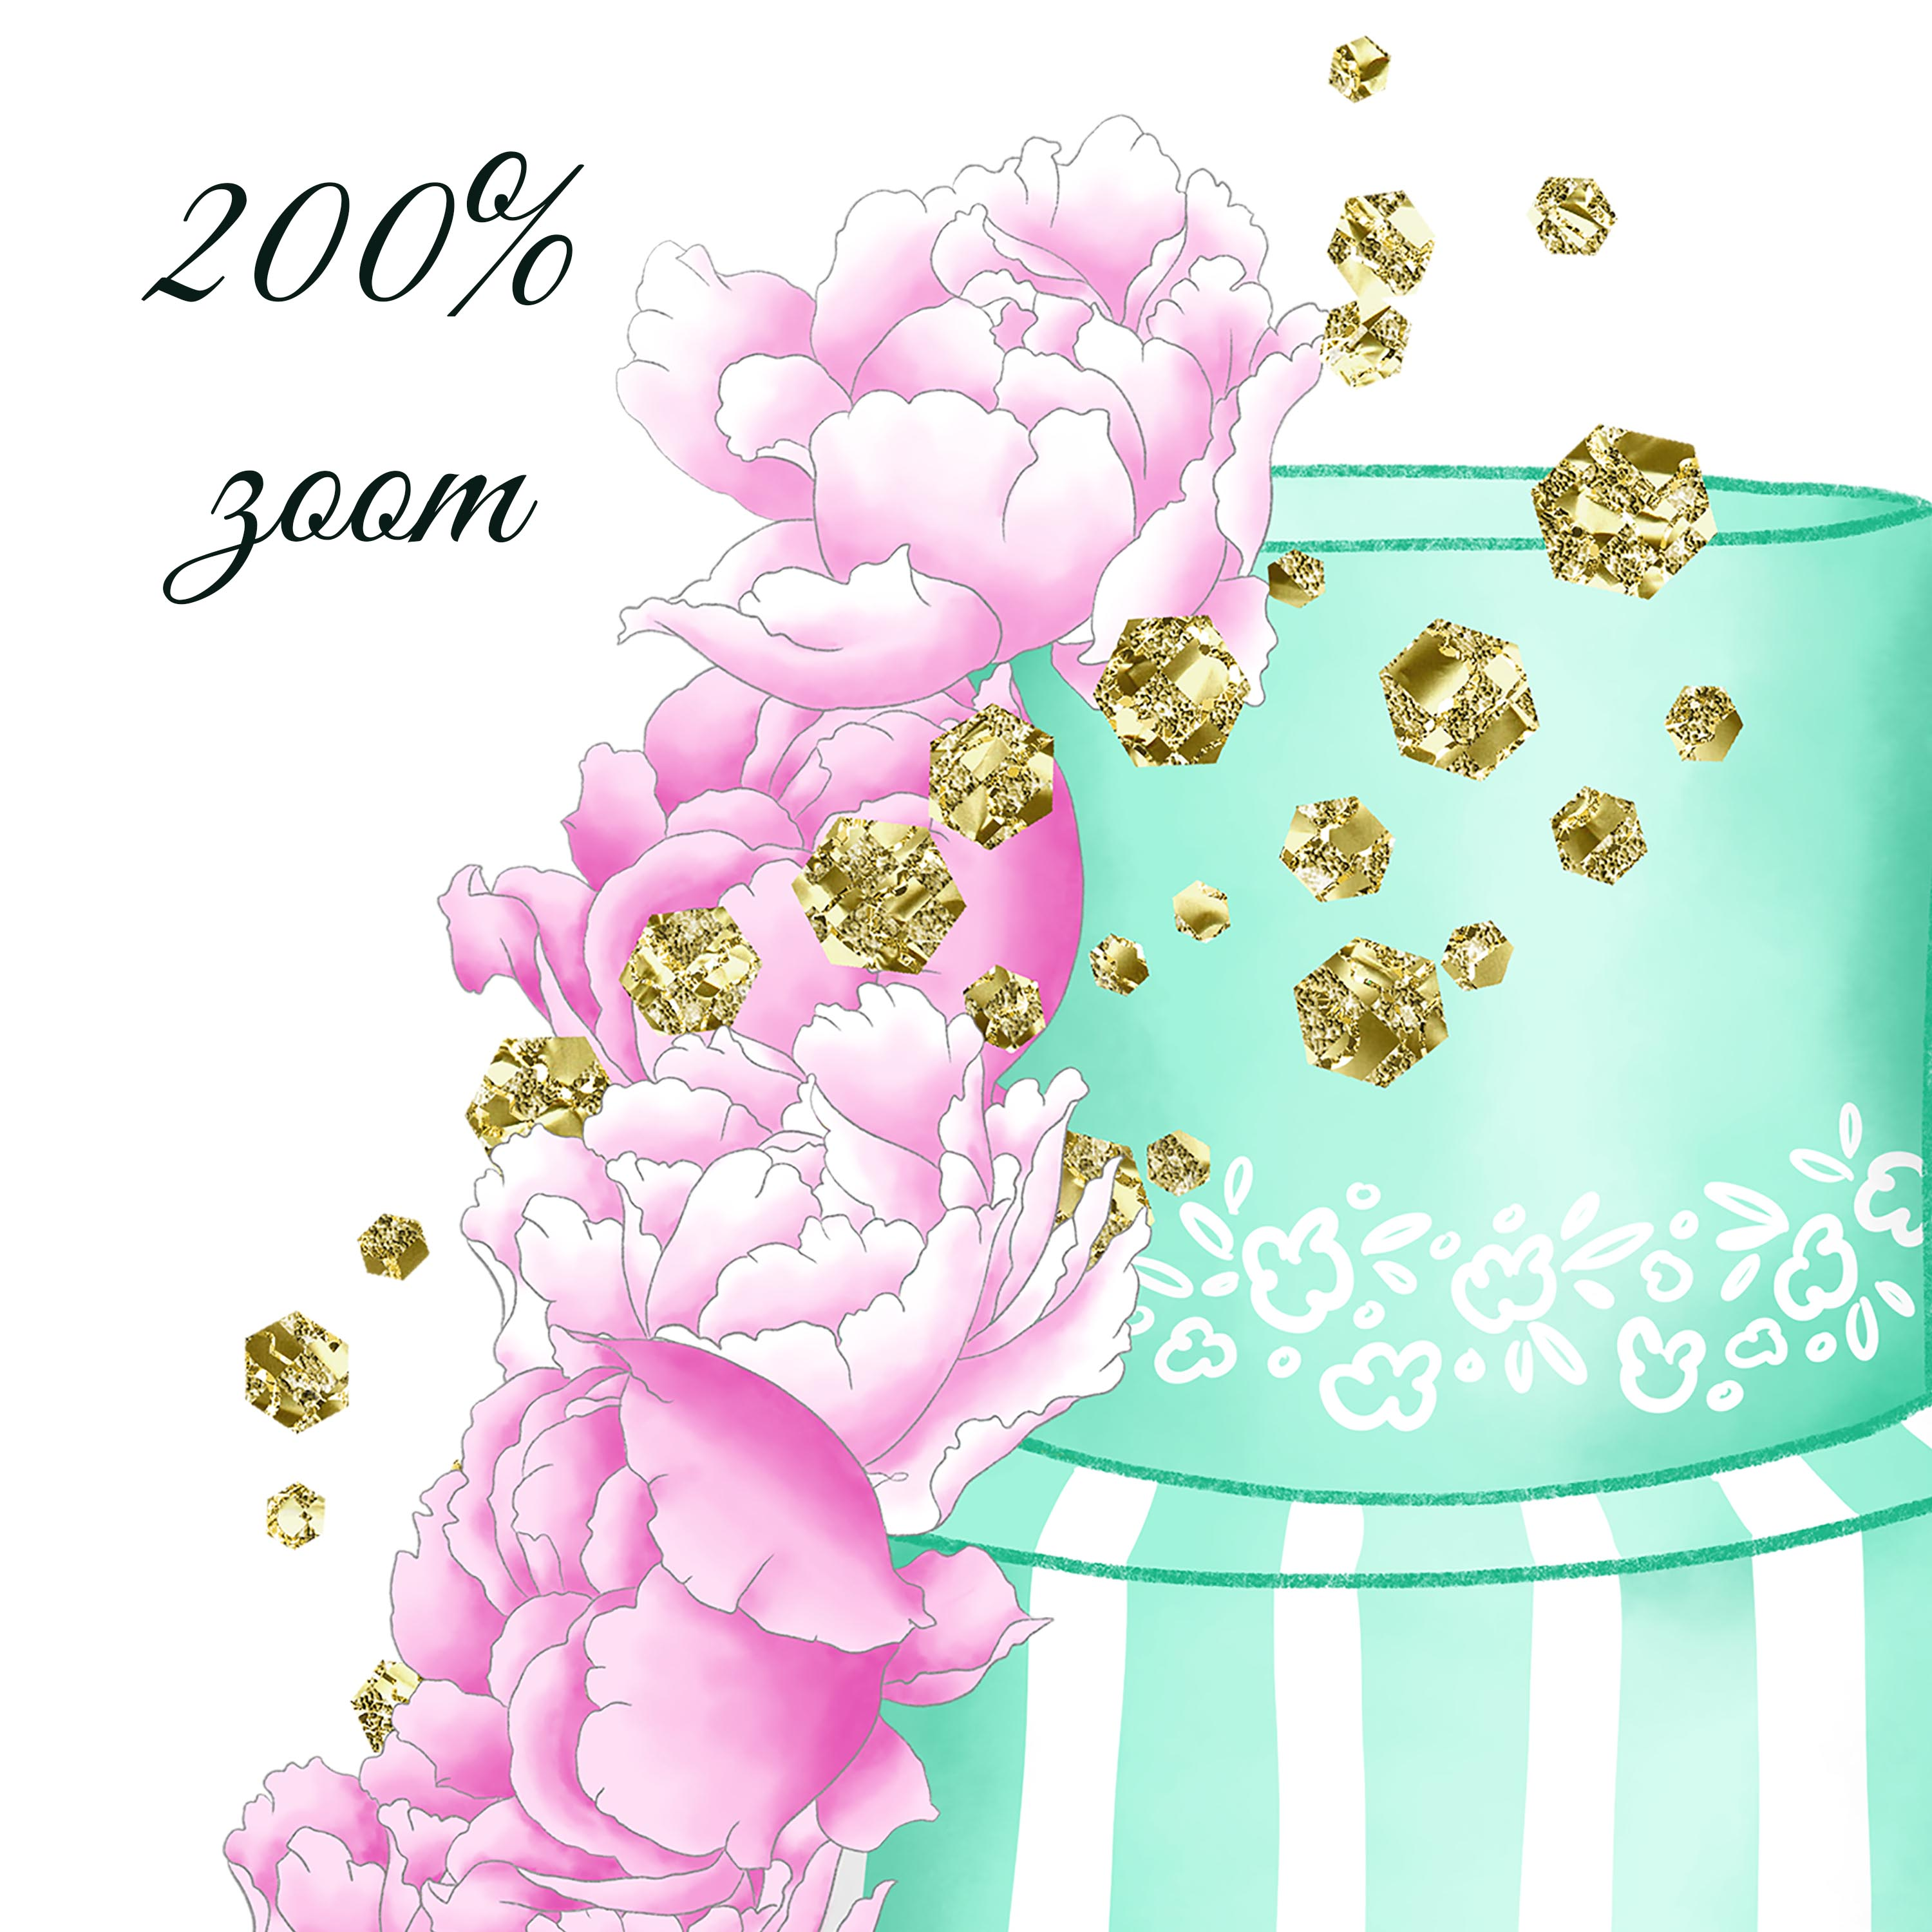 Fashion cakes clipart example image 6